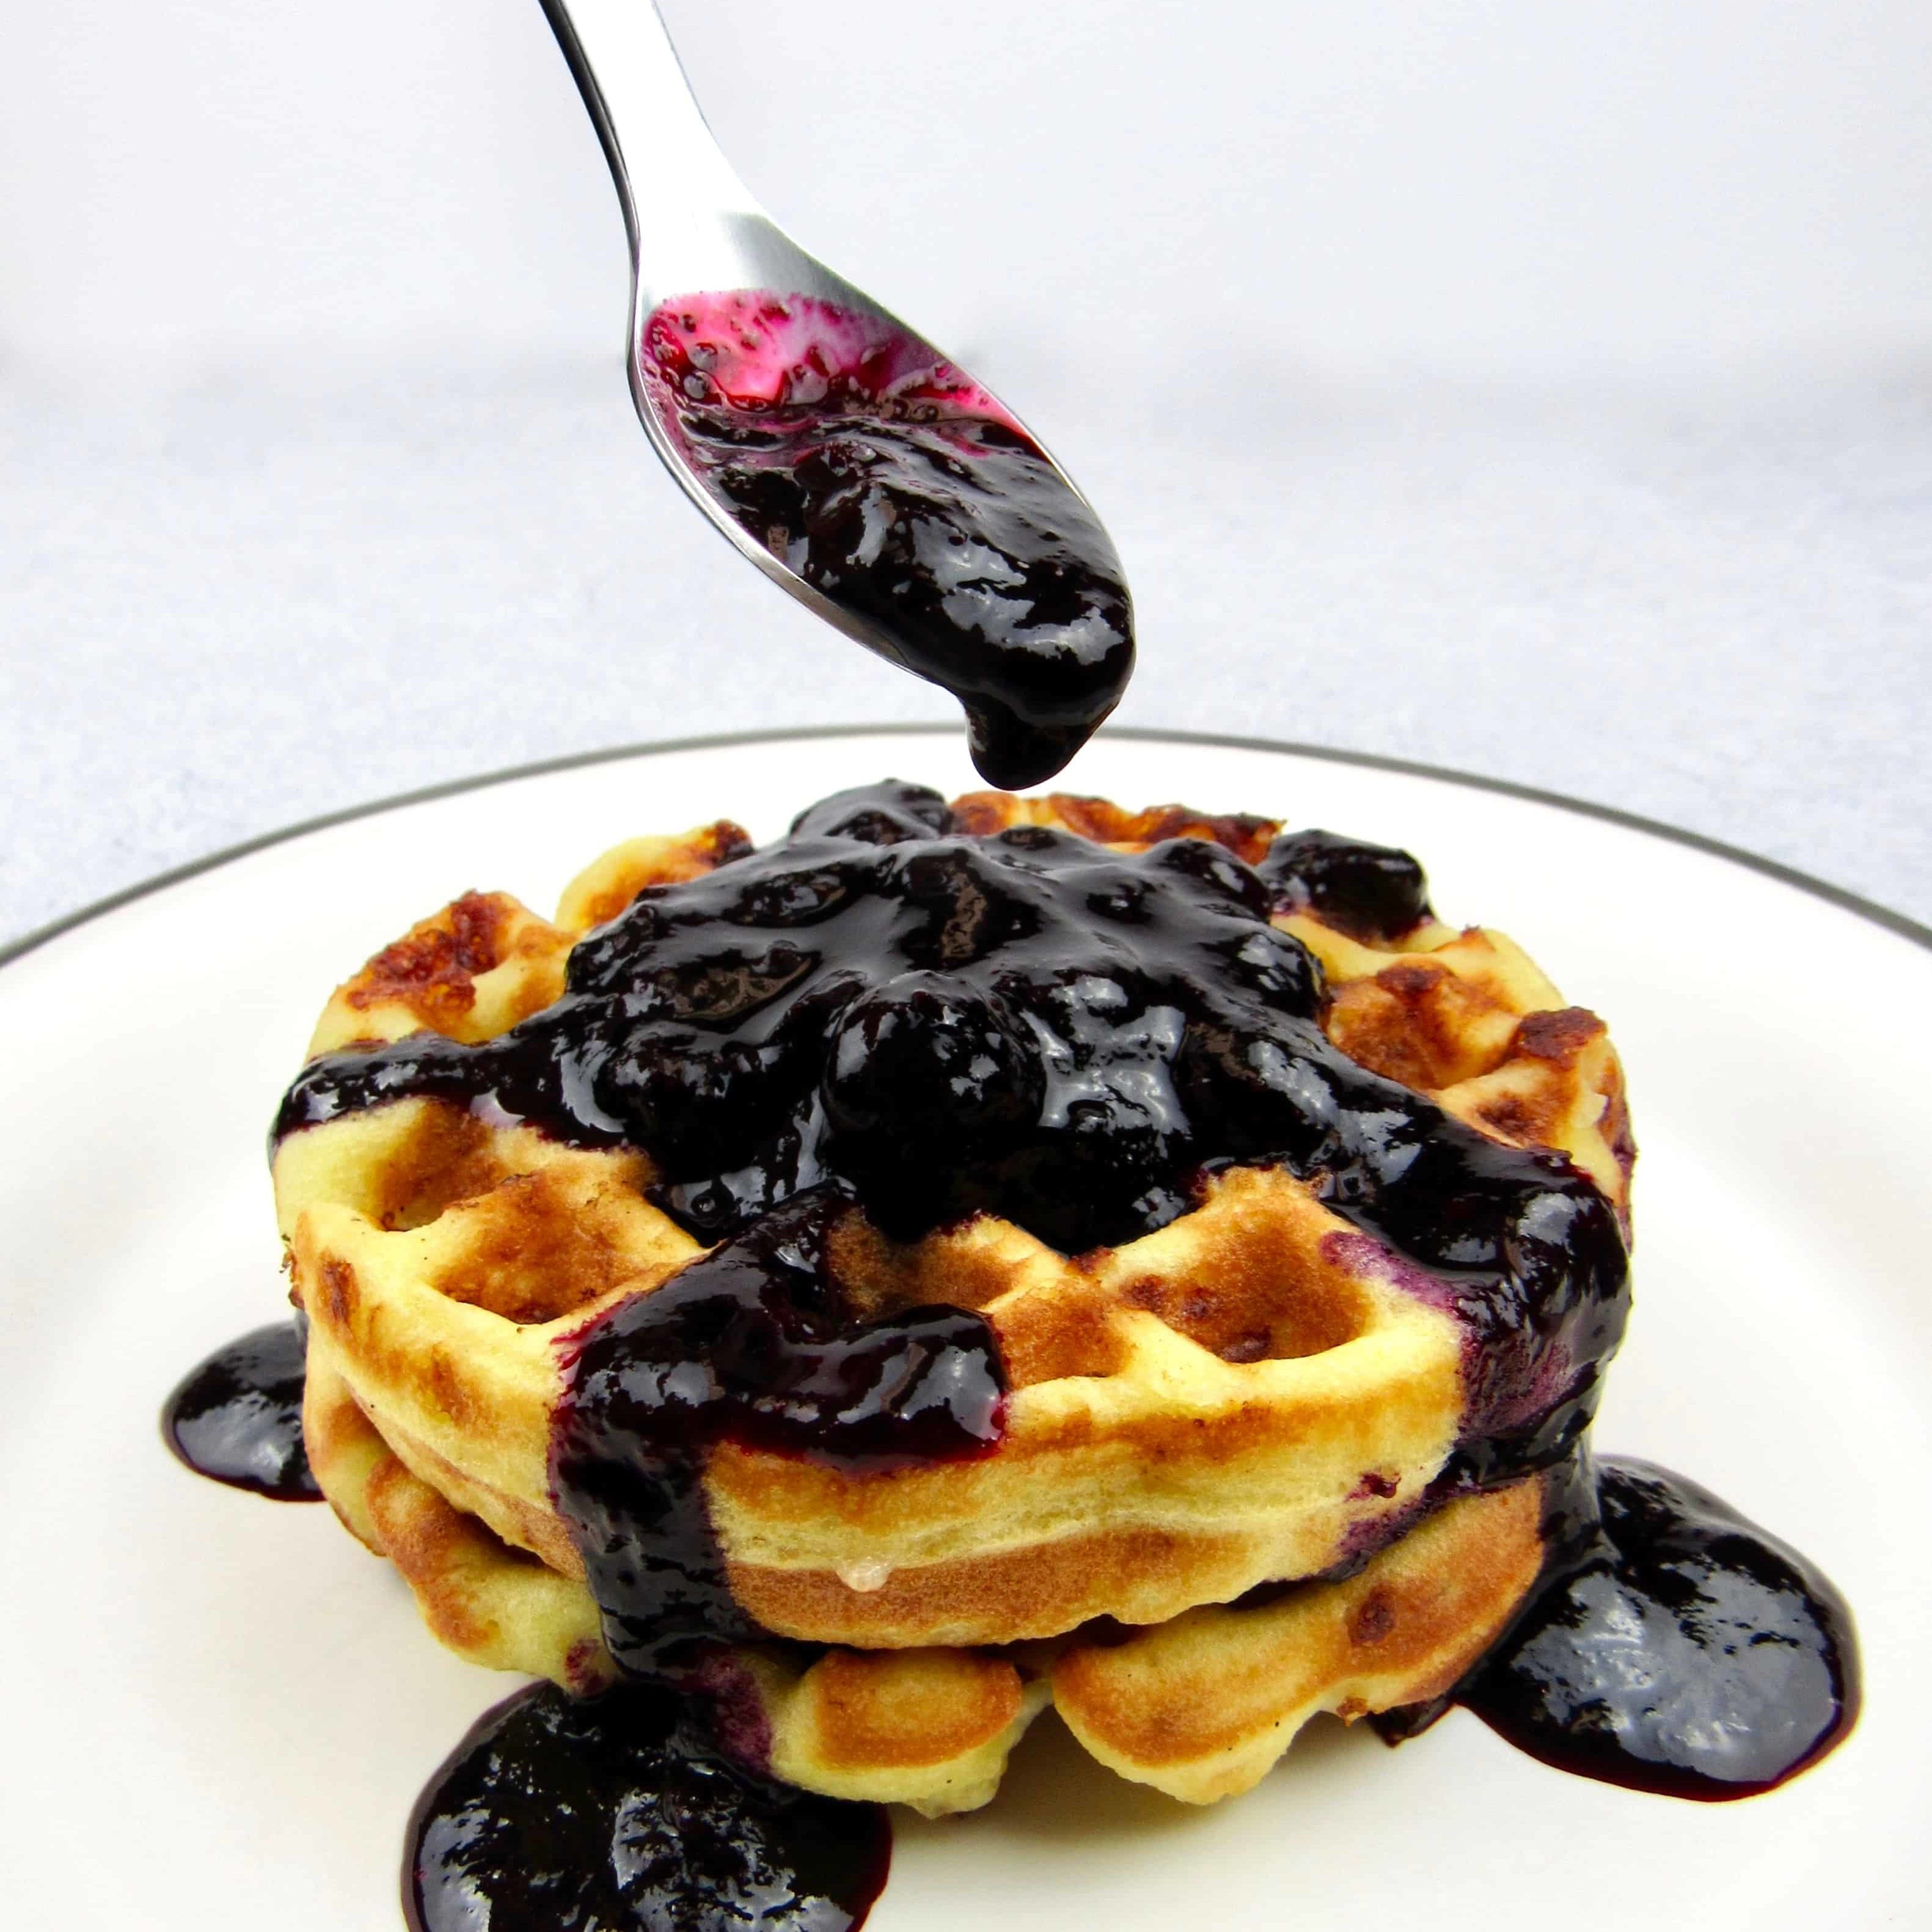 waffles wtih blueberry sauce dripping from spoon on top